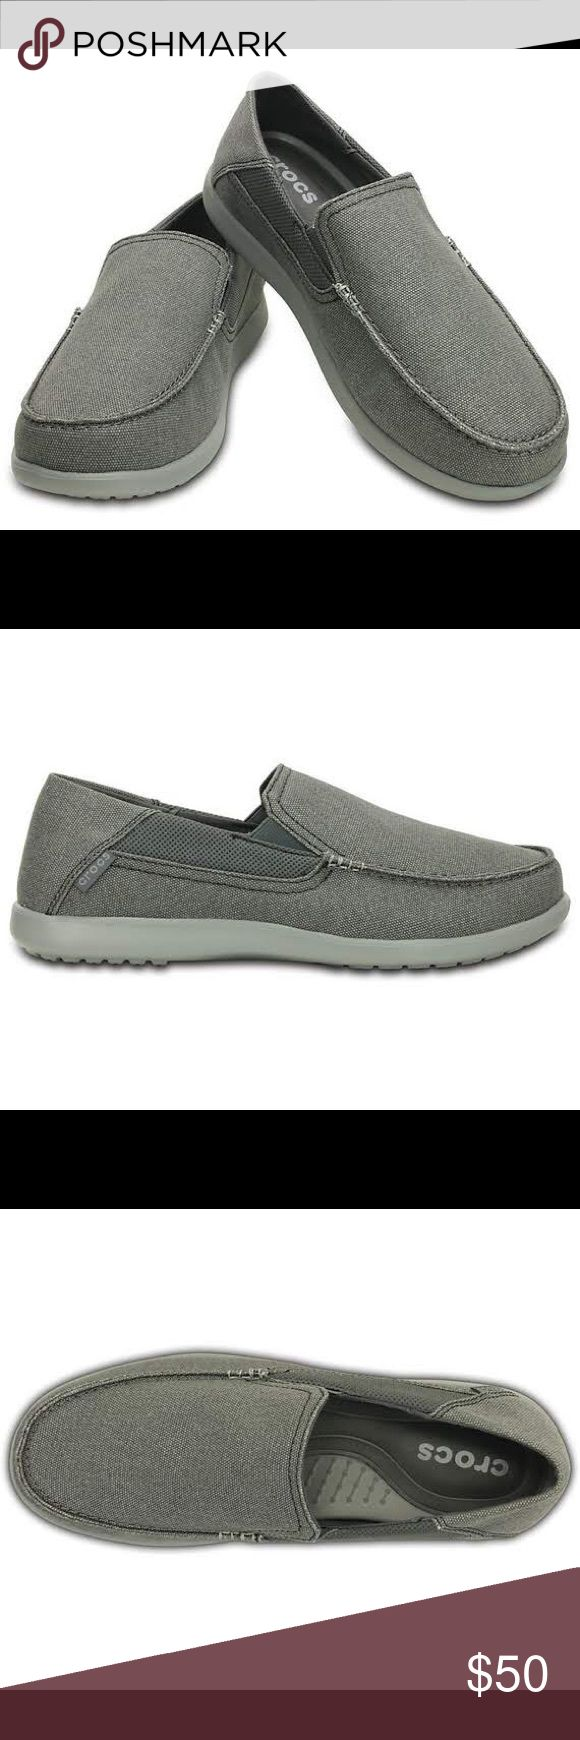 "Crocs Men's Santa Cruz 2 Luxe Loafer If you like that sink-into-it softness, this is the Santa Cruz for you. Feels soft, yet still has the ""bounce back"" of Croslite™ foam for all-day cushion. It's our softest footbed yet! Men's Santa Cruz 2 Luxe Loafer details: Laid-back Santa Cruz attitude with a more refined look Relaxed canvas uppers Our softest footbed yet: memory foam pillows on top of a Croslite™ foam base Sink-in softness, with the resilient bounce-back of Croslite™ material Comfort…"